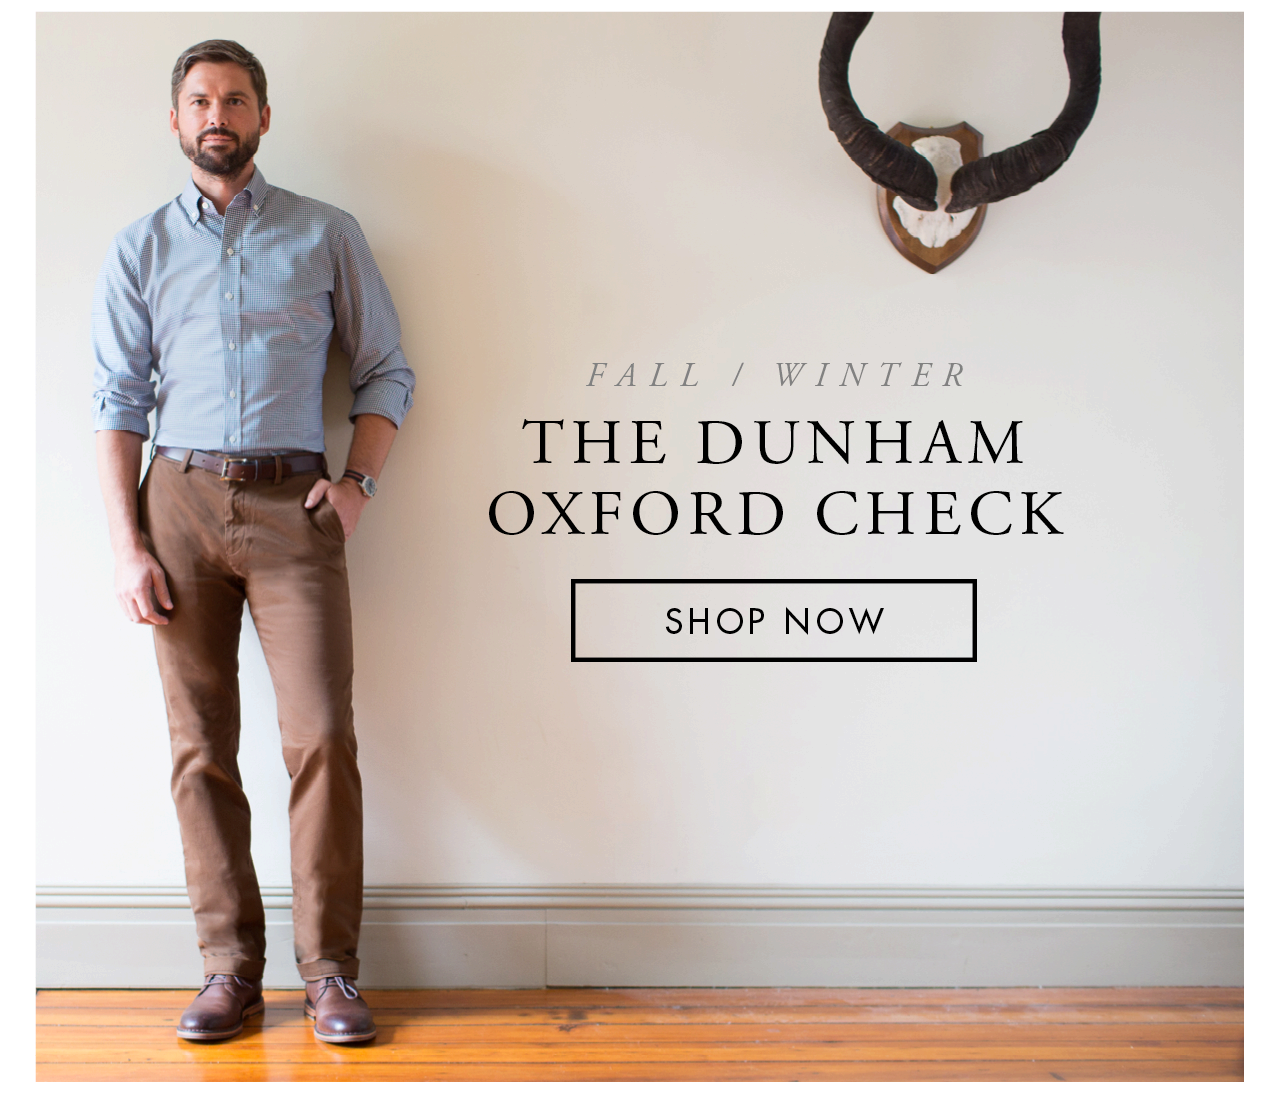 The Dunham Oxford Check